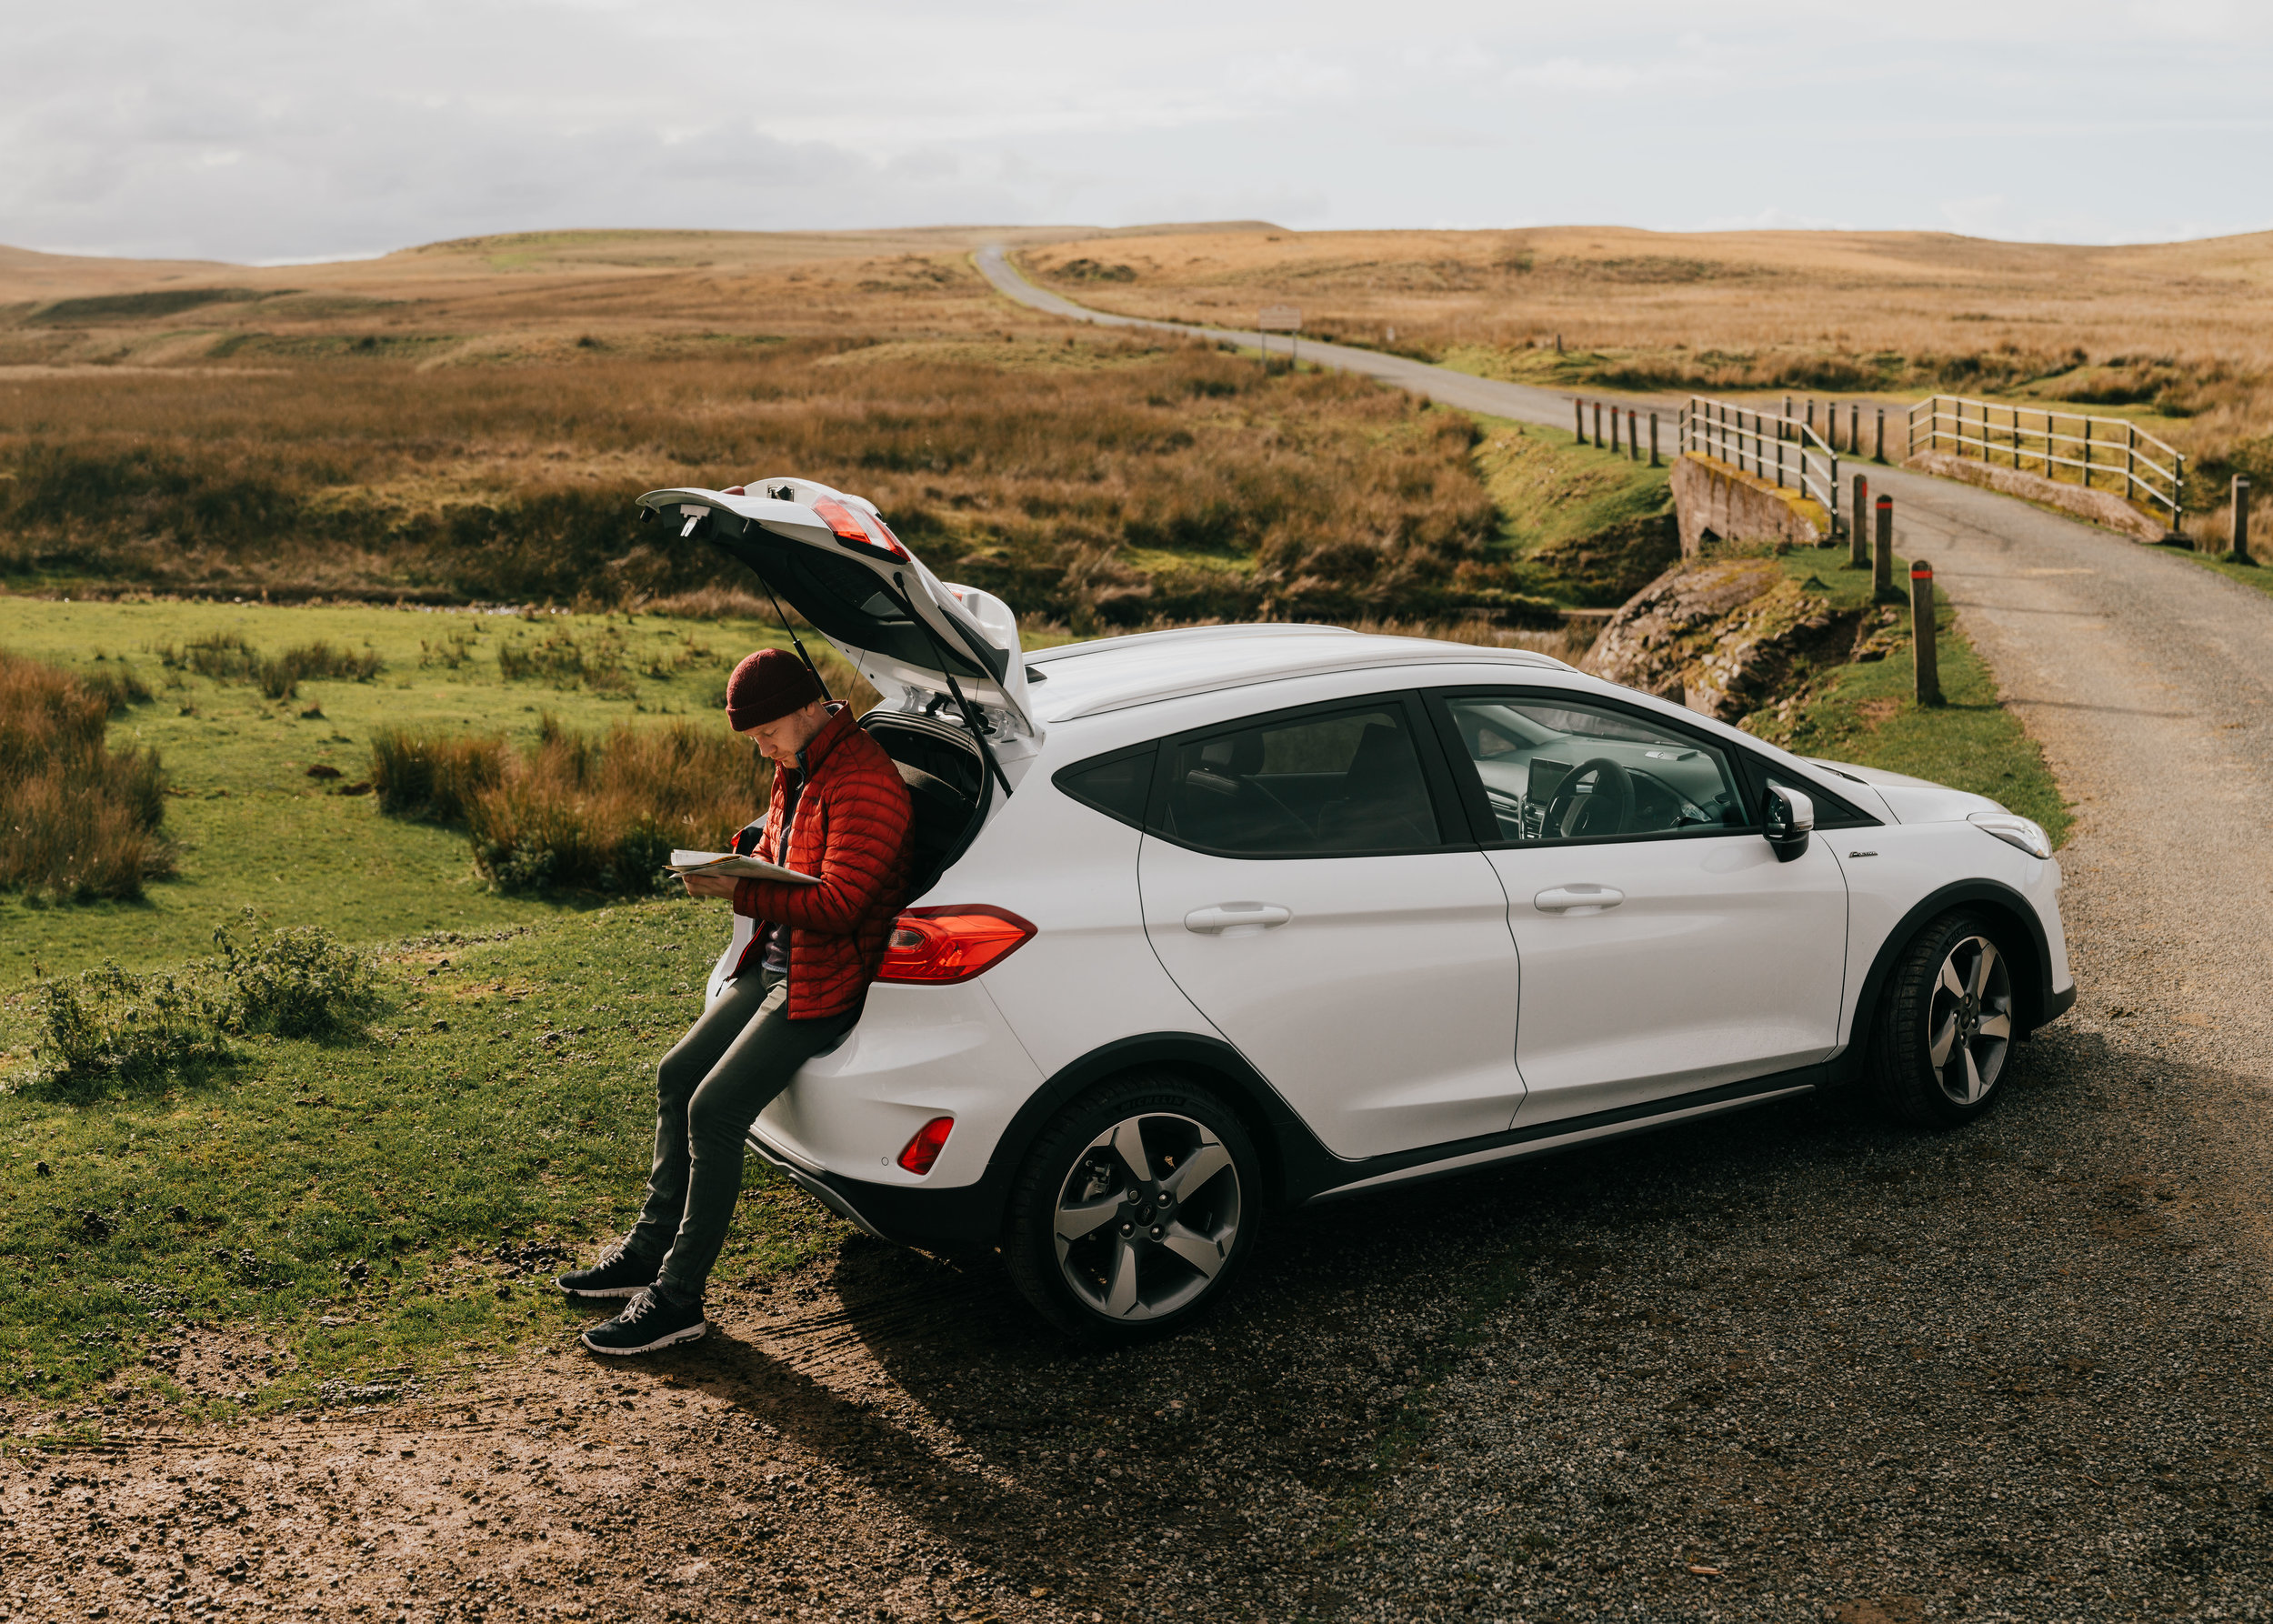 Ford Fiesta Brecon Beacons (1 of 1).jpg